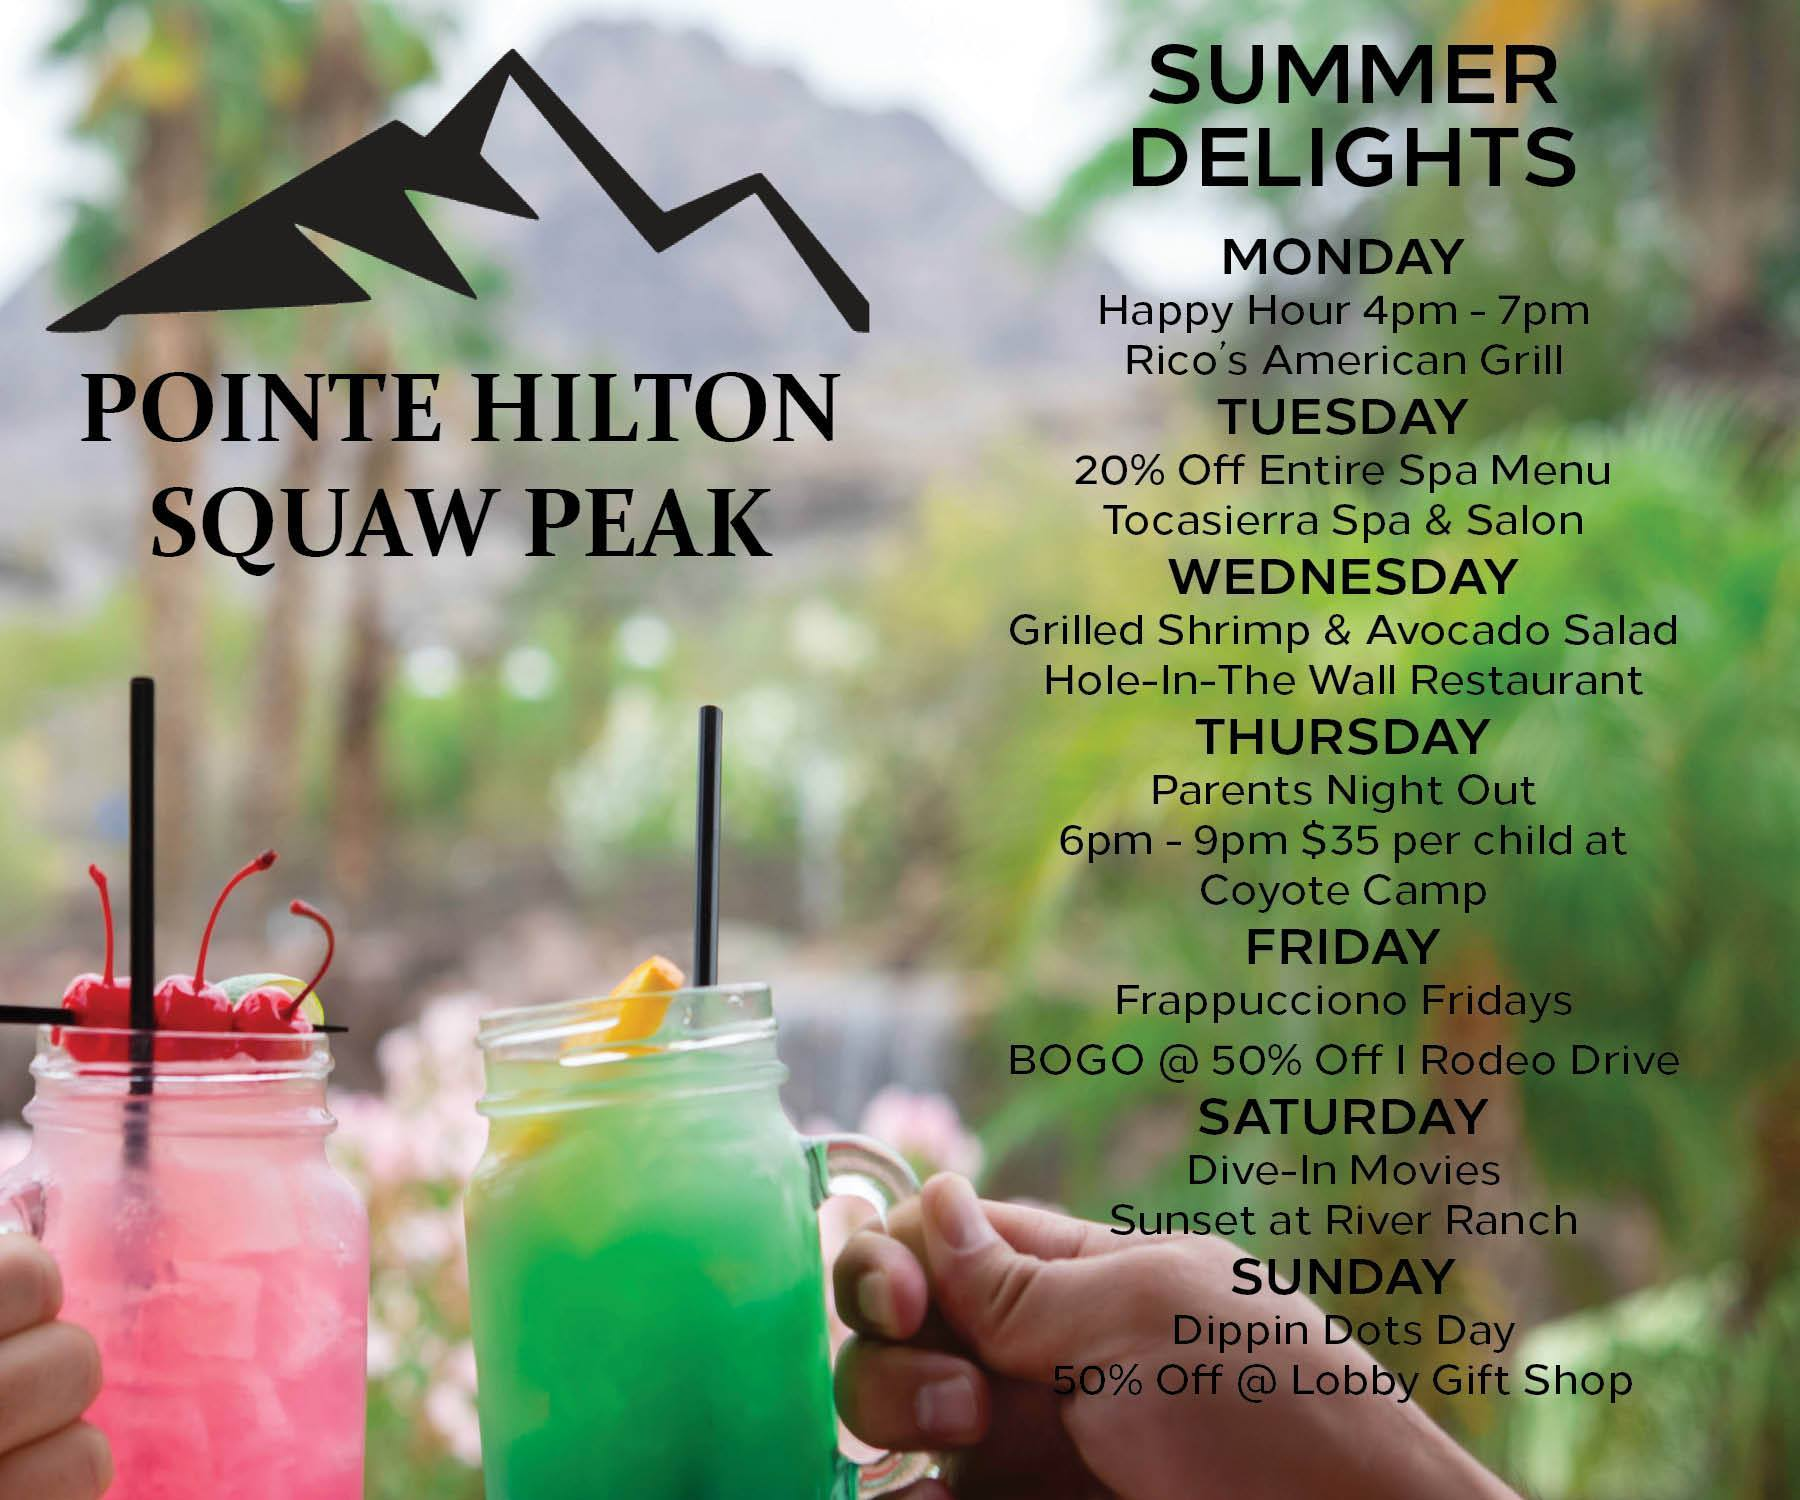 Summer Delights at the Pointe Hilton Squaw Peak Resort